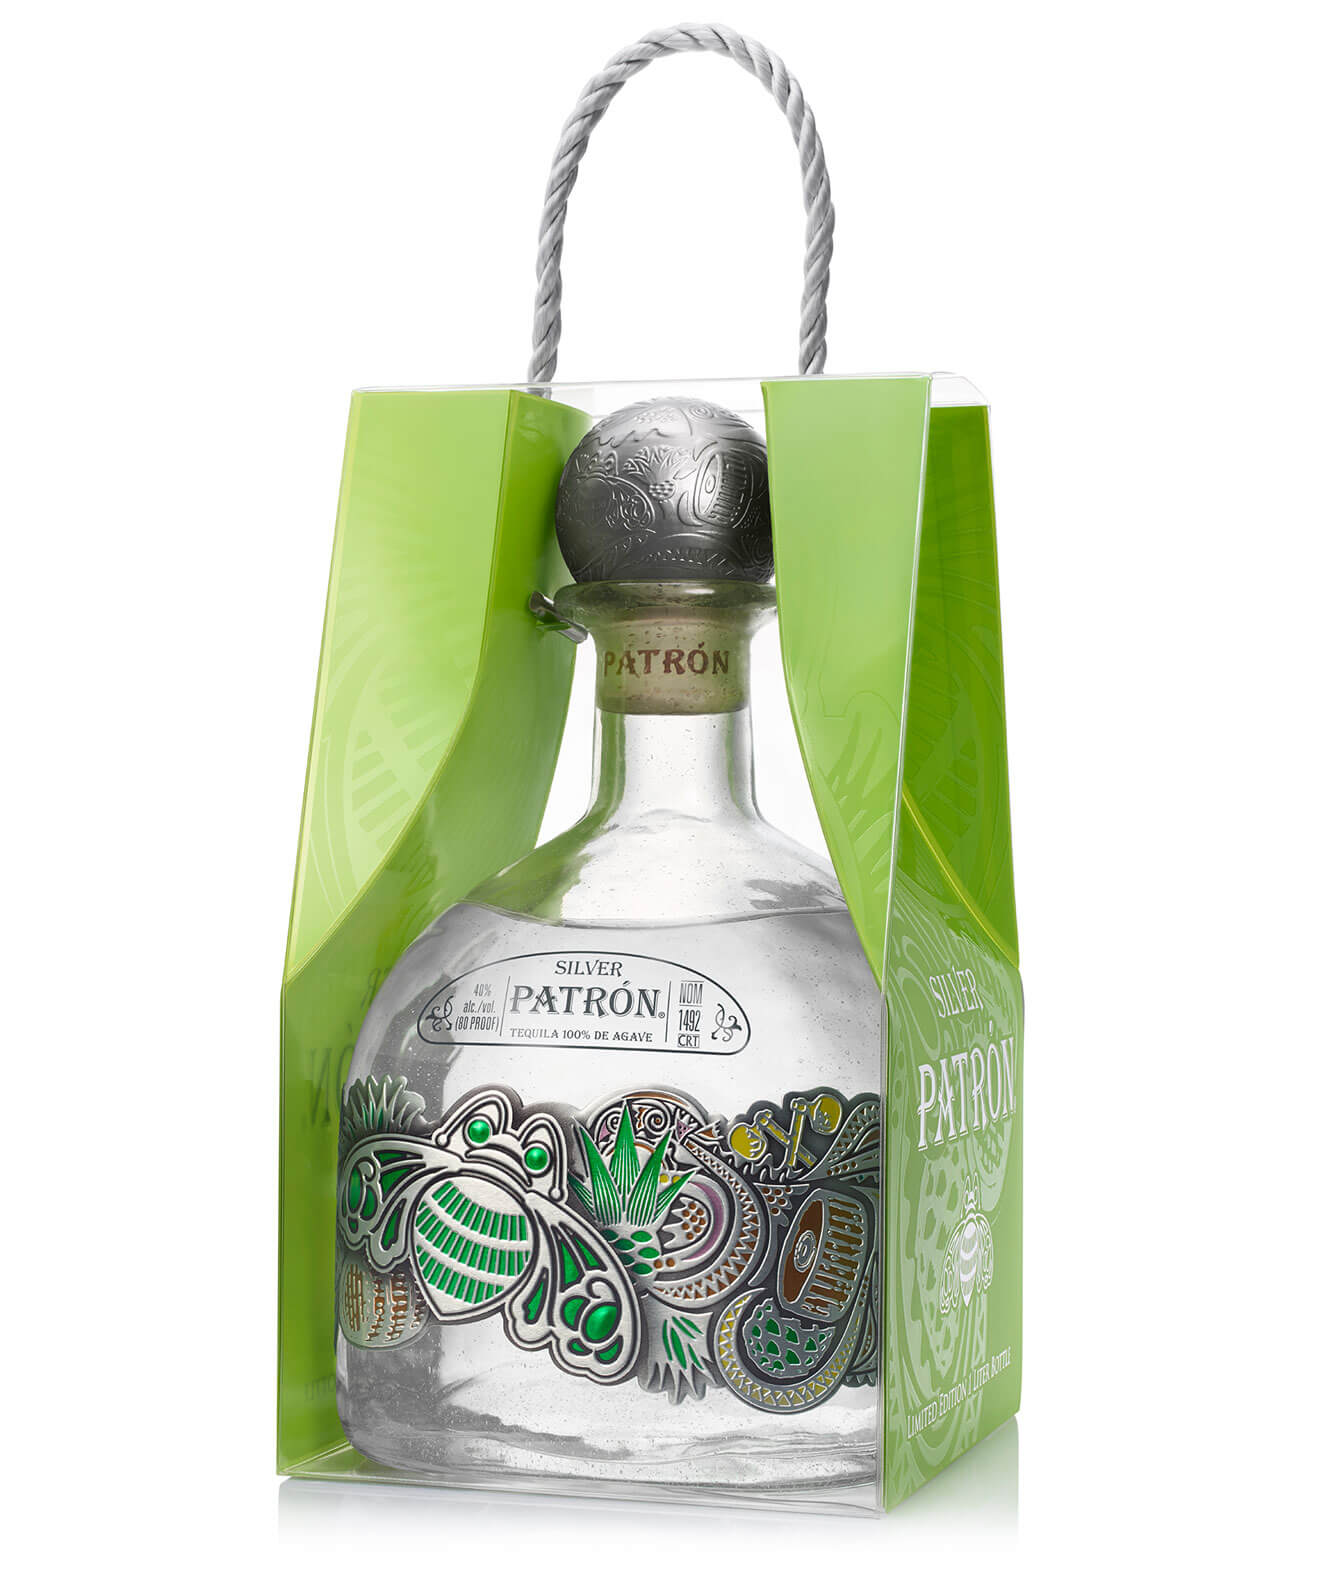 Patrón Silver One-Liter Limited-Edition Bottle, with package on white